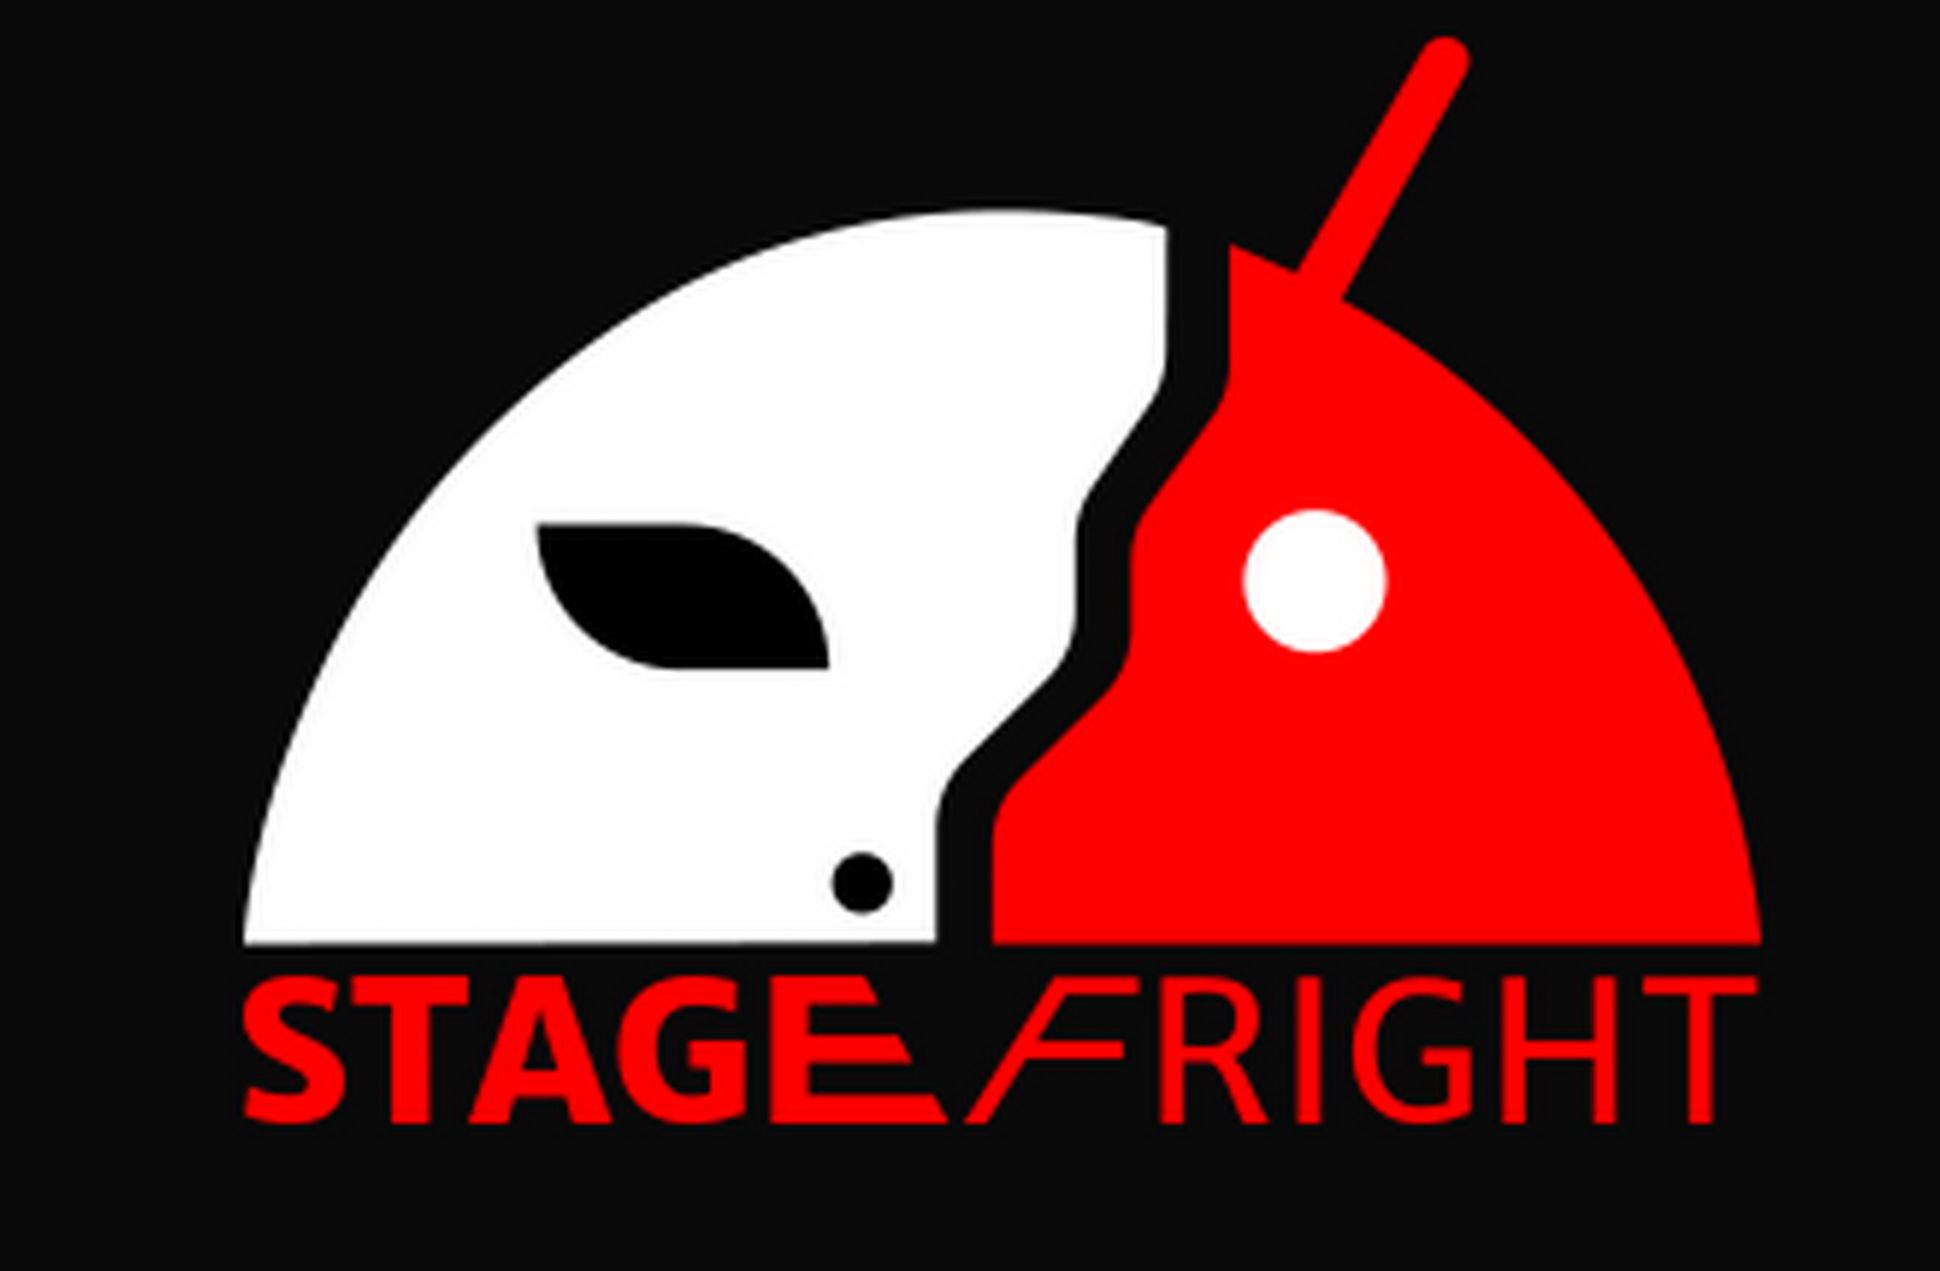 Los Xperia Z3 vulnerables a stagefright tras actualizar